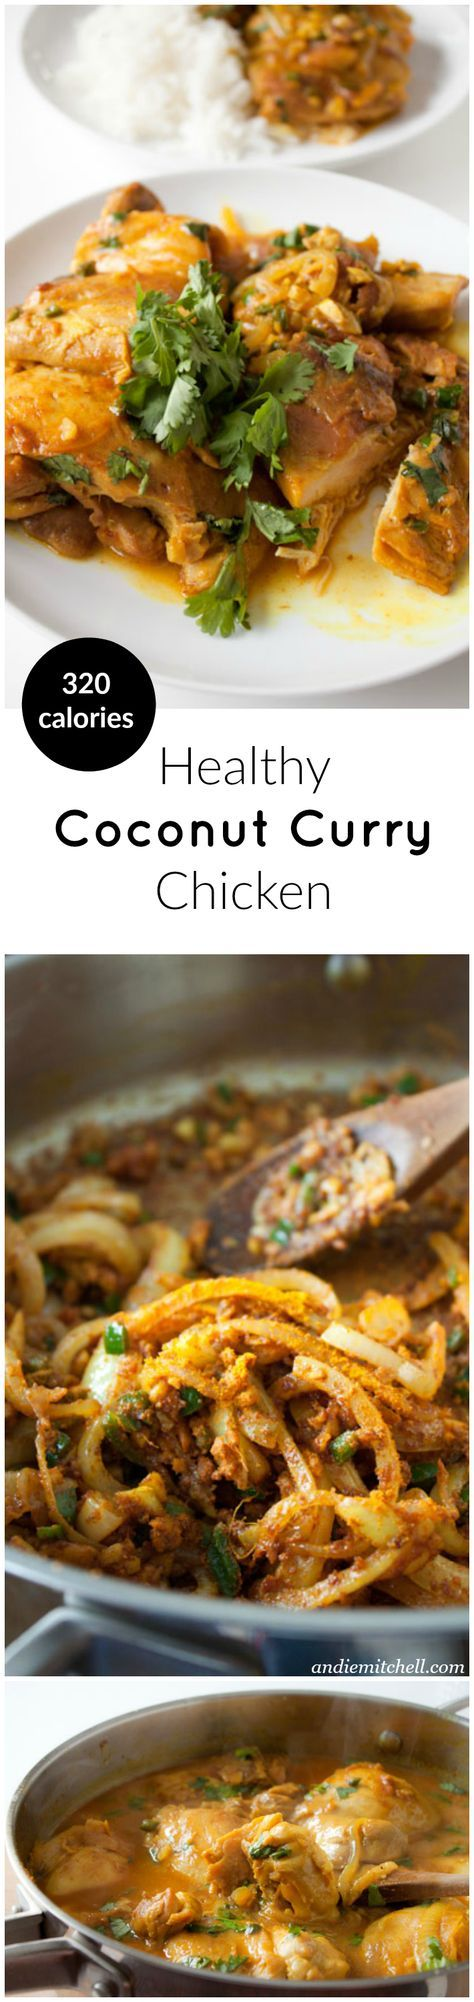 best 25+ coconut chicken recipes ideas on pinterest | coconut